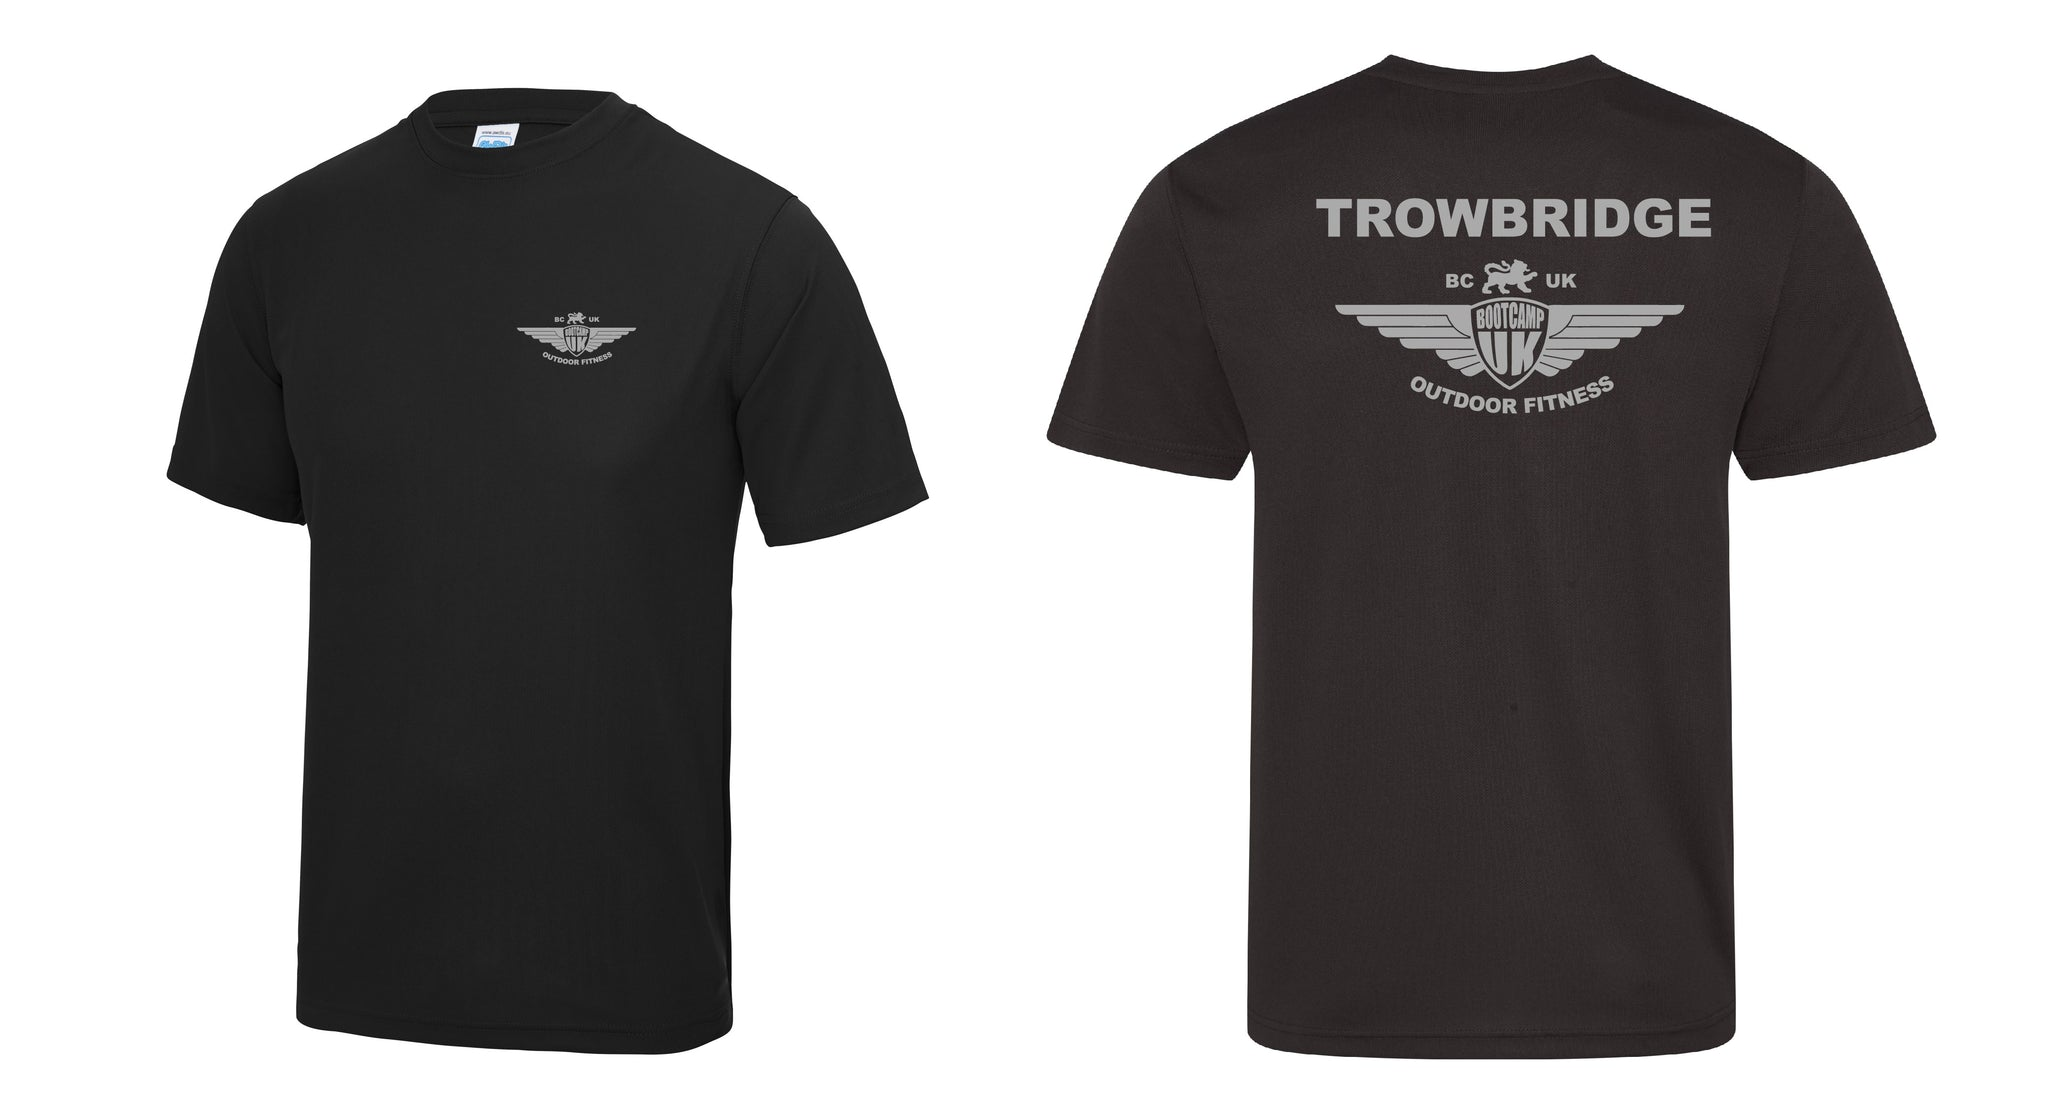 Trowbridge T Shirt